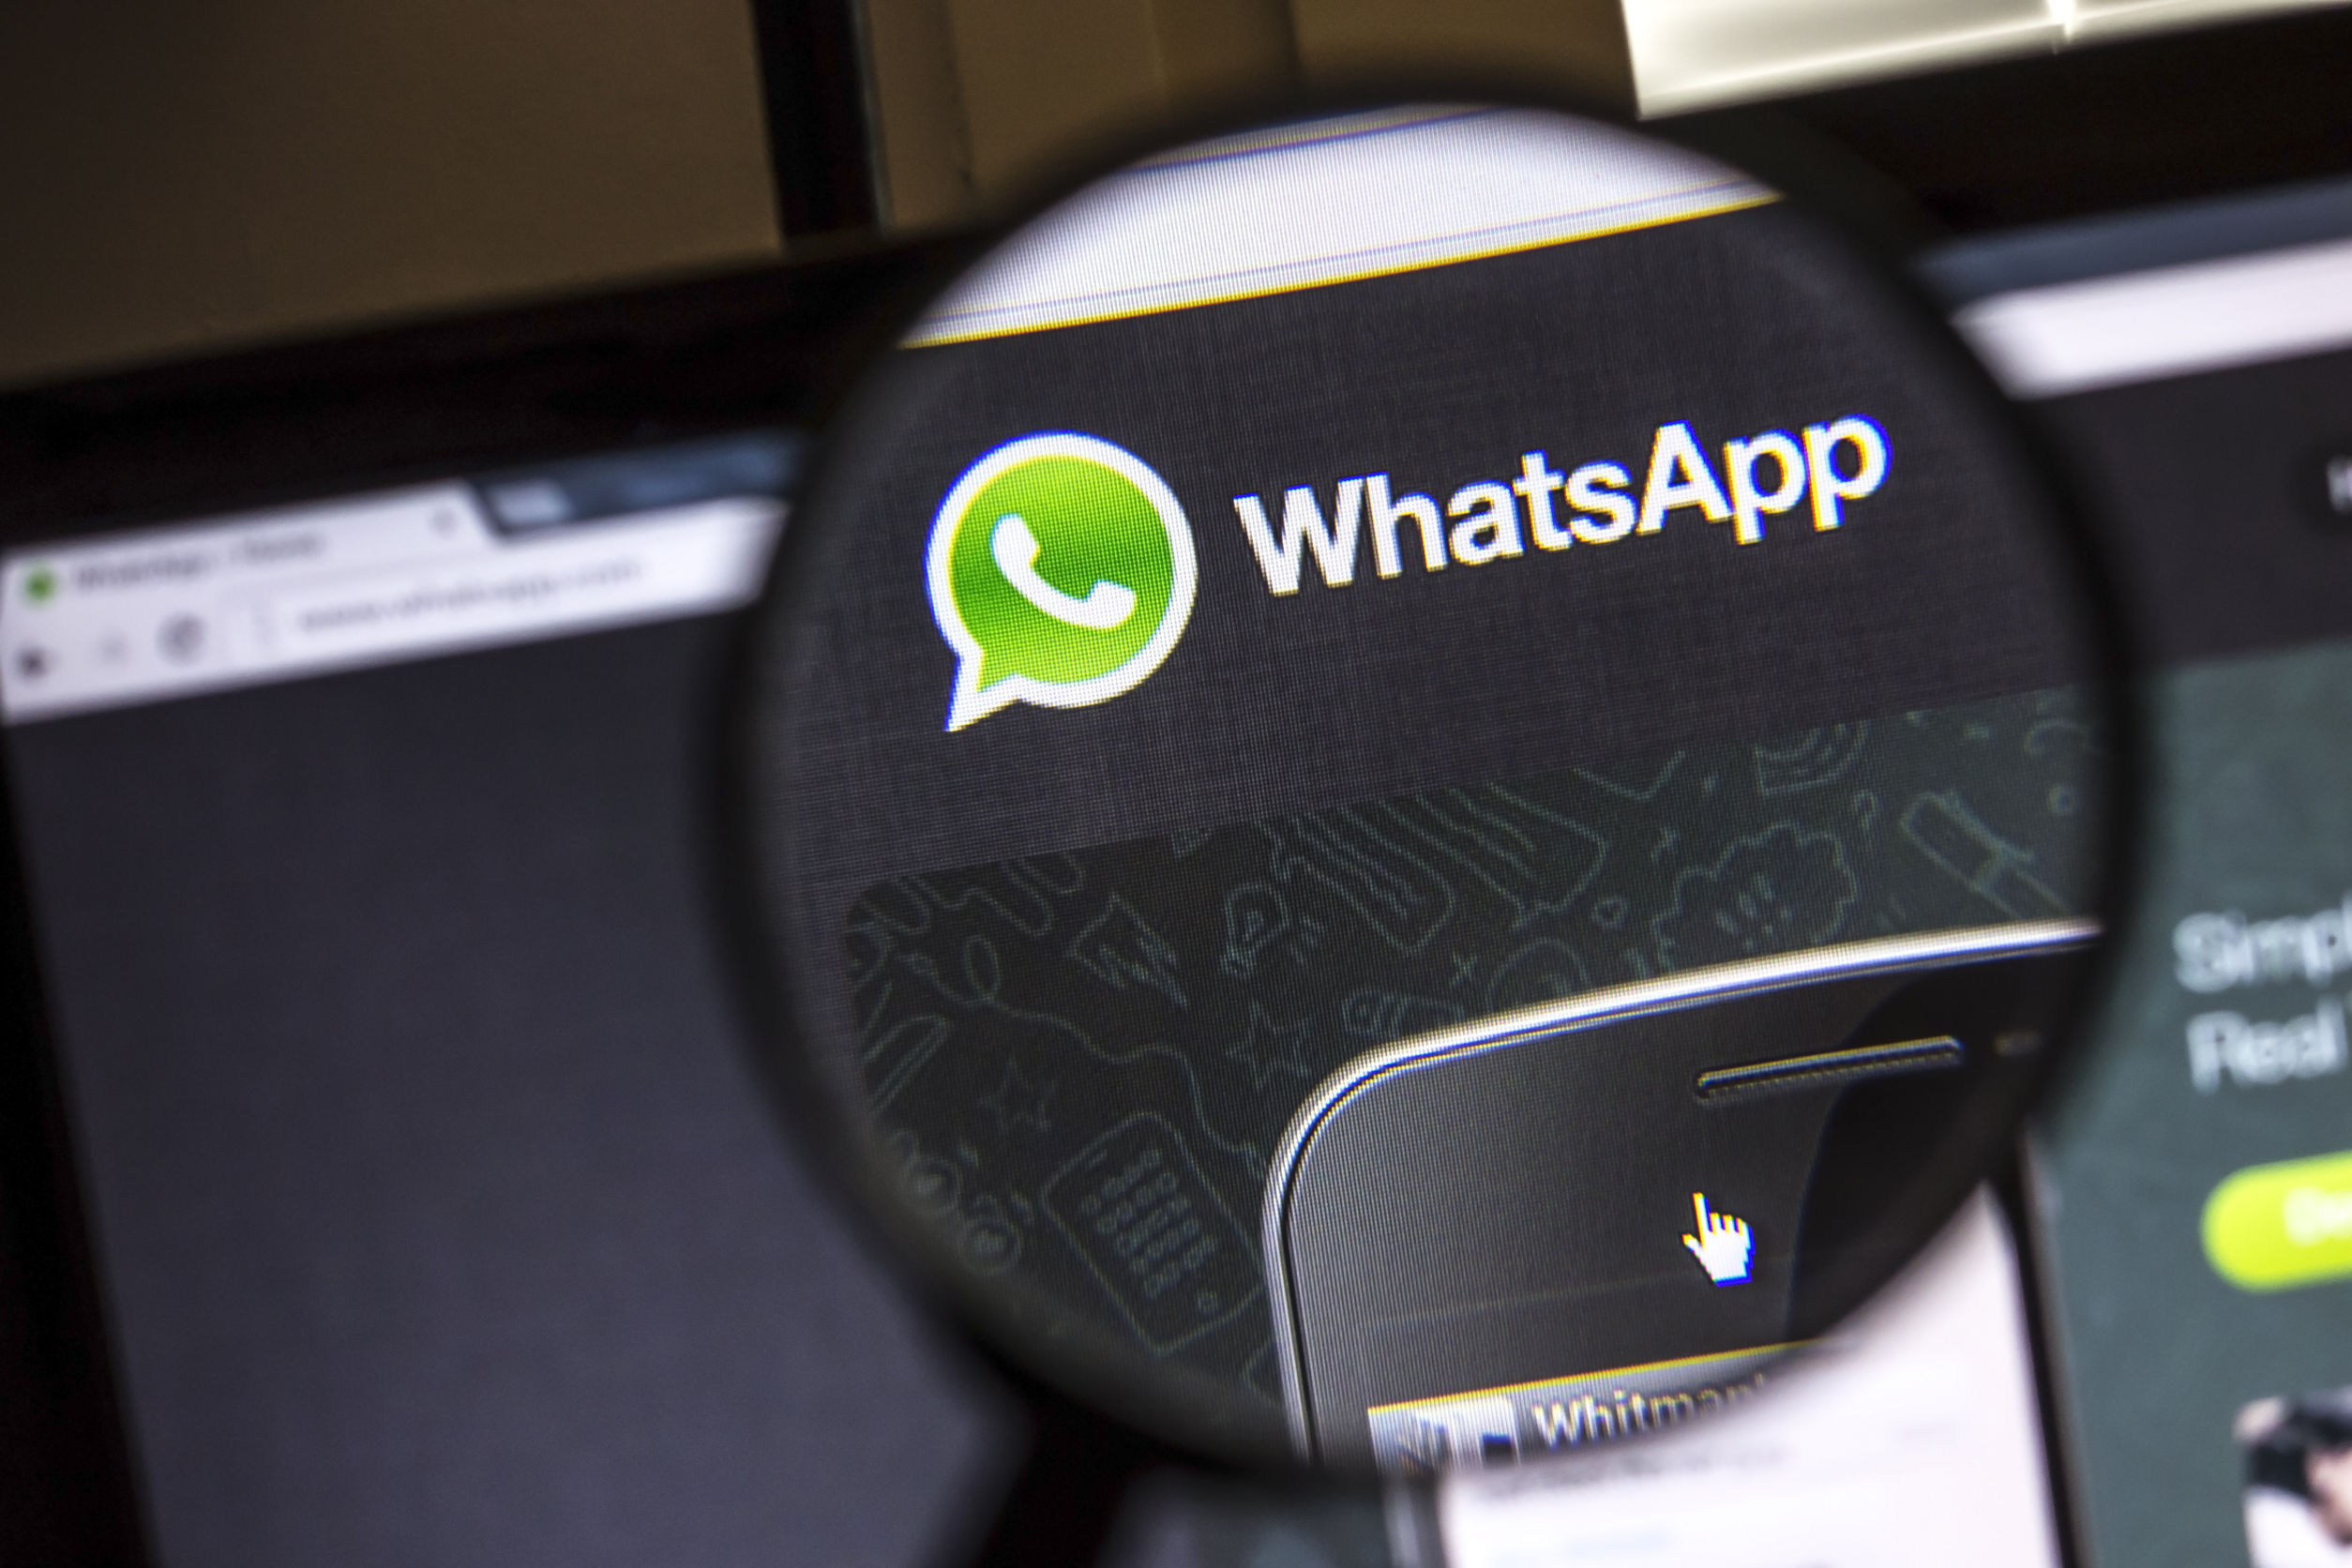 WhatsApp Plans to Dominate Snapchat Market